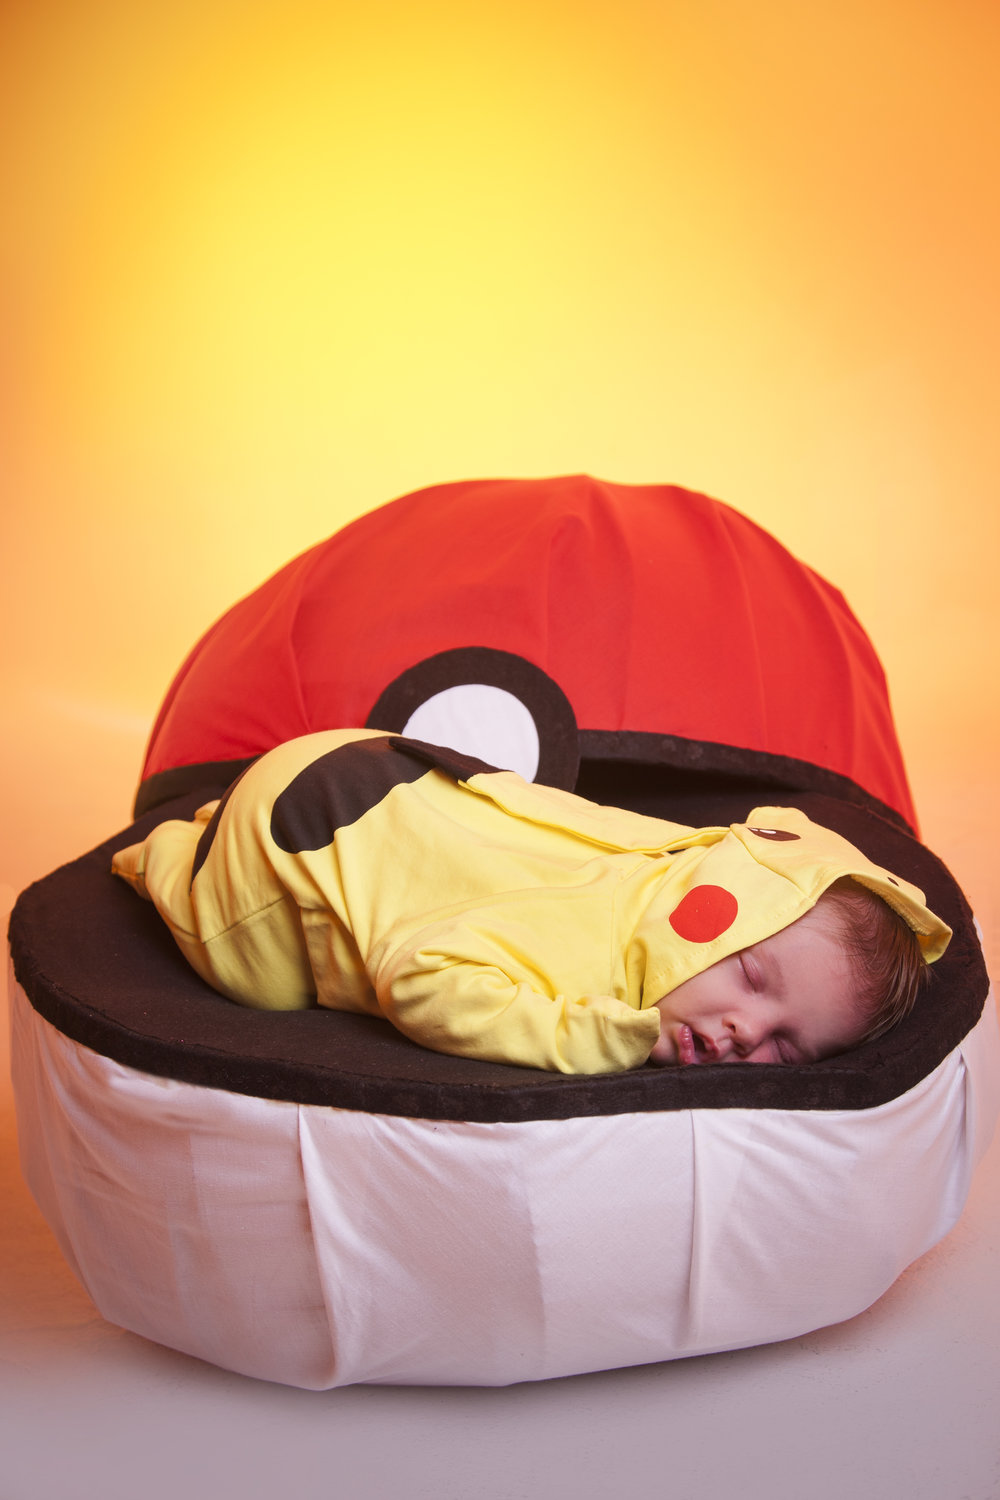 photography-studio-leicester-photo-shoot-photographer-baby-newborn-zigzag-zig-zag-family-clarendon-park-photographer-queens-road-ideas-props-pokemon-pikachu-pokeball.jpg